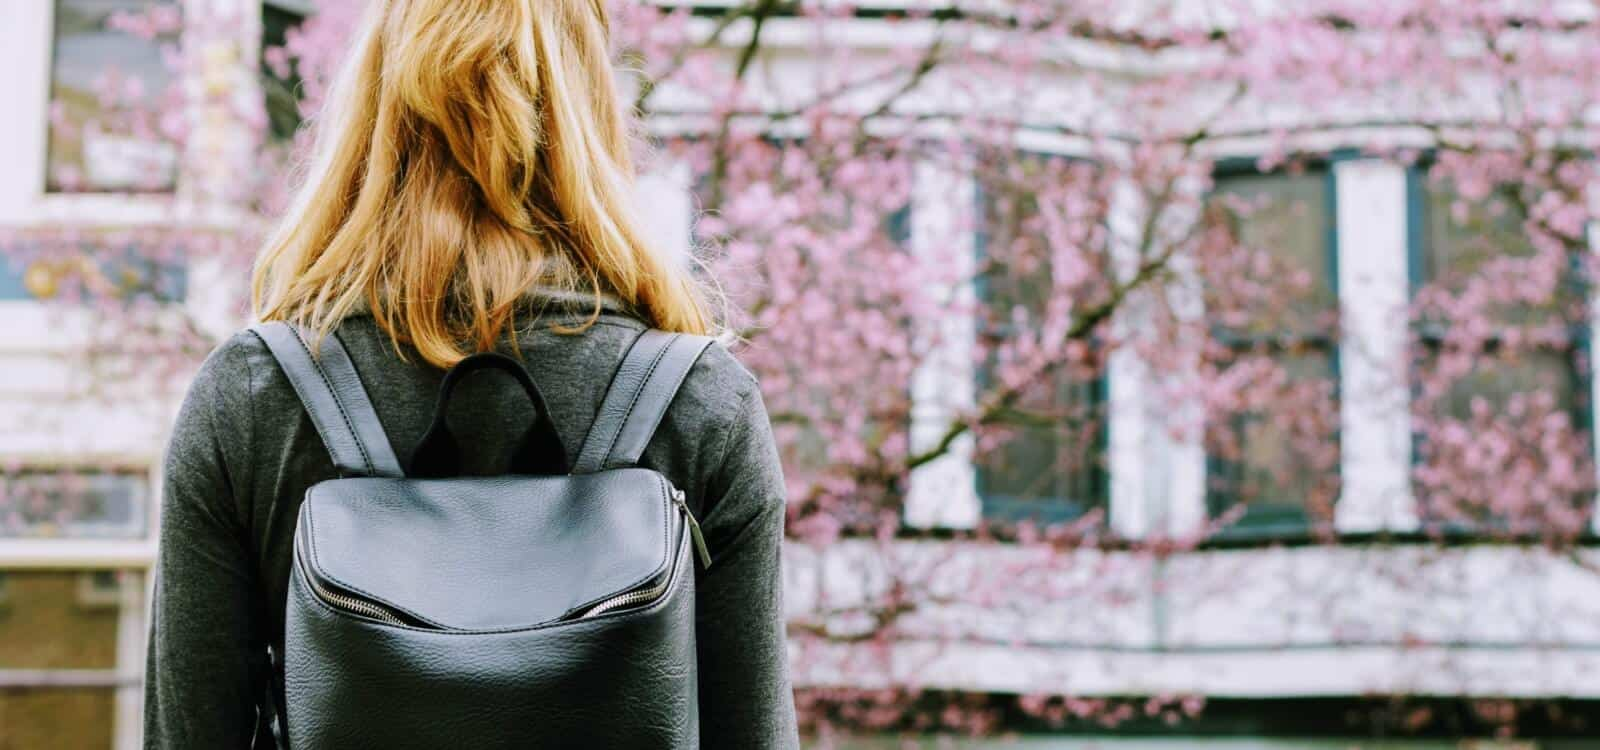 A simple guide to budgeting for your student loan repayments